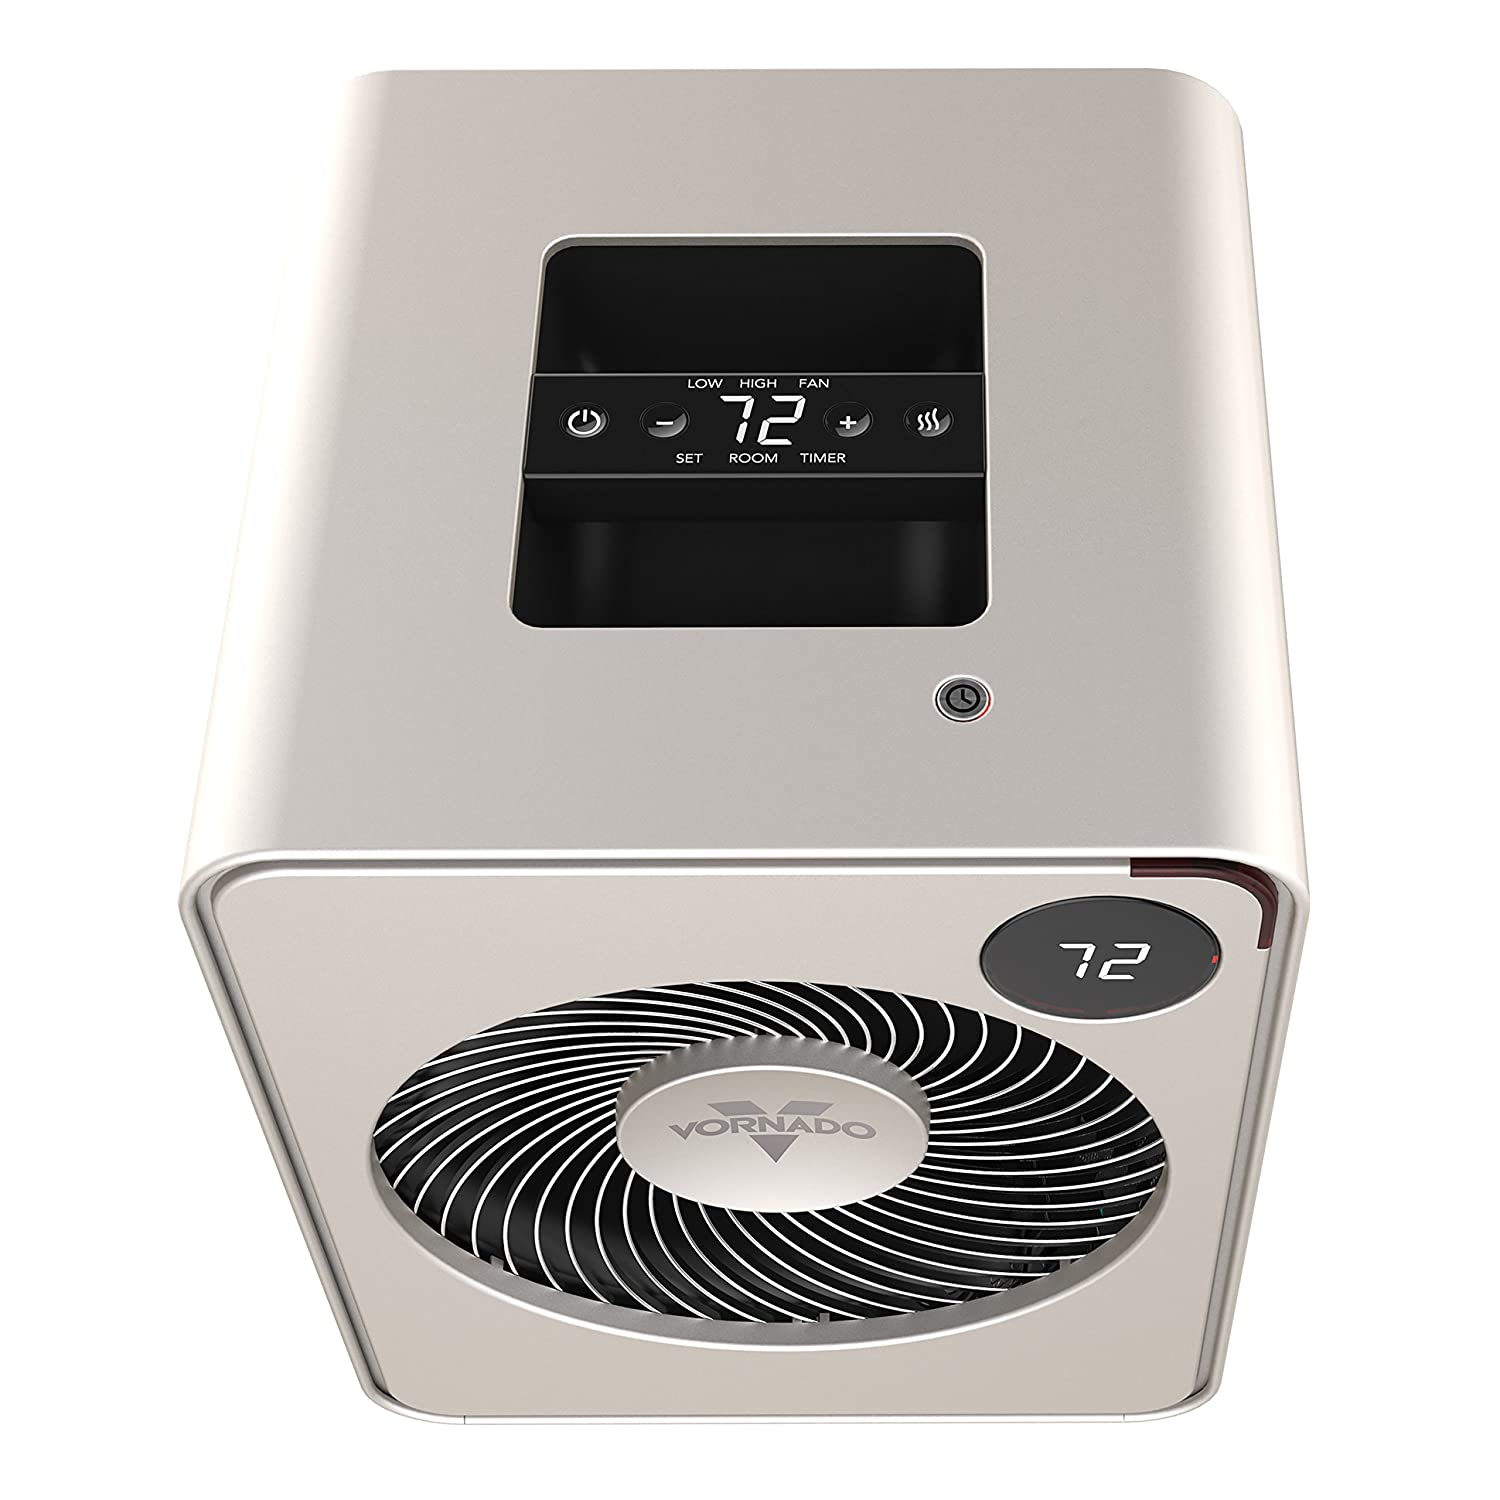 Vornado Vmh500 Whole Room Metal Heater With Auto Climate Fan For Automatic Temperature Control 2 Heat Settings Adjustable Thermostat 1 12 Hour Timer And Remote Champagne Home